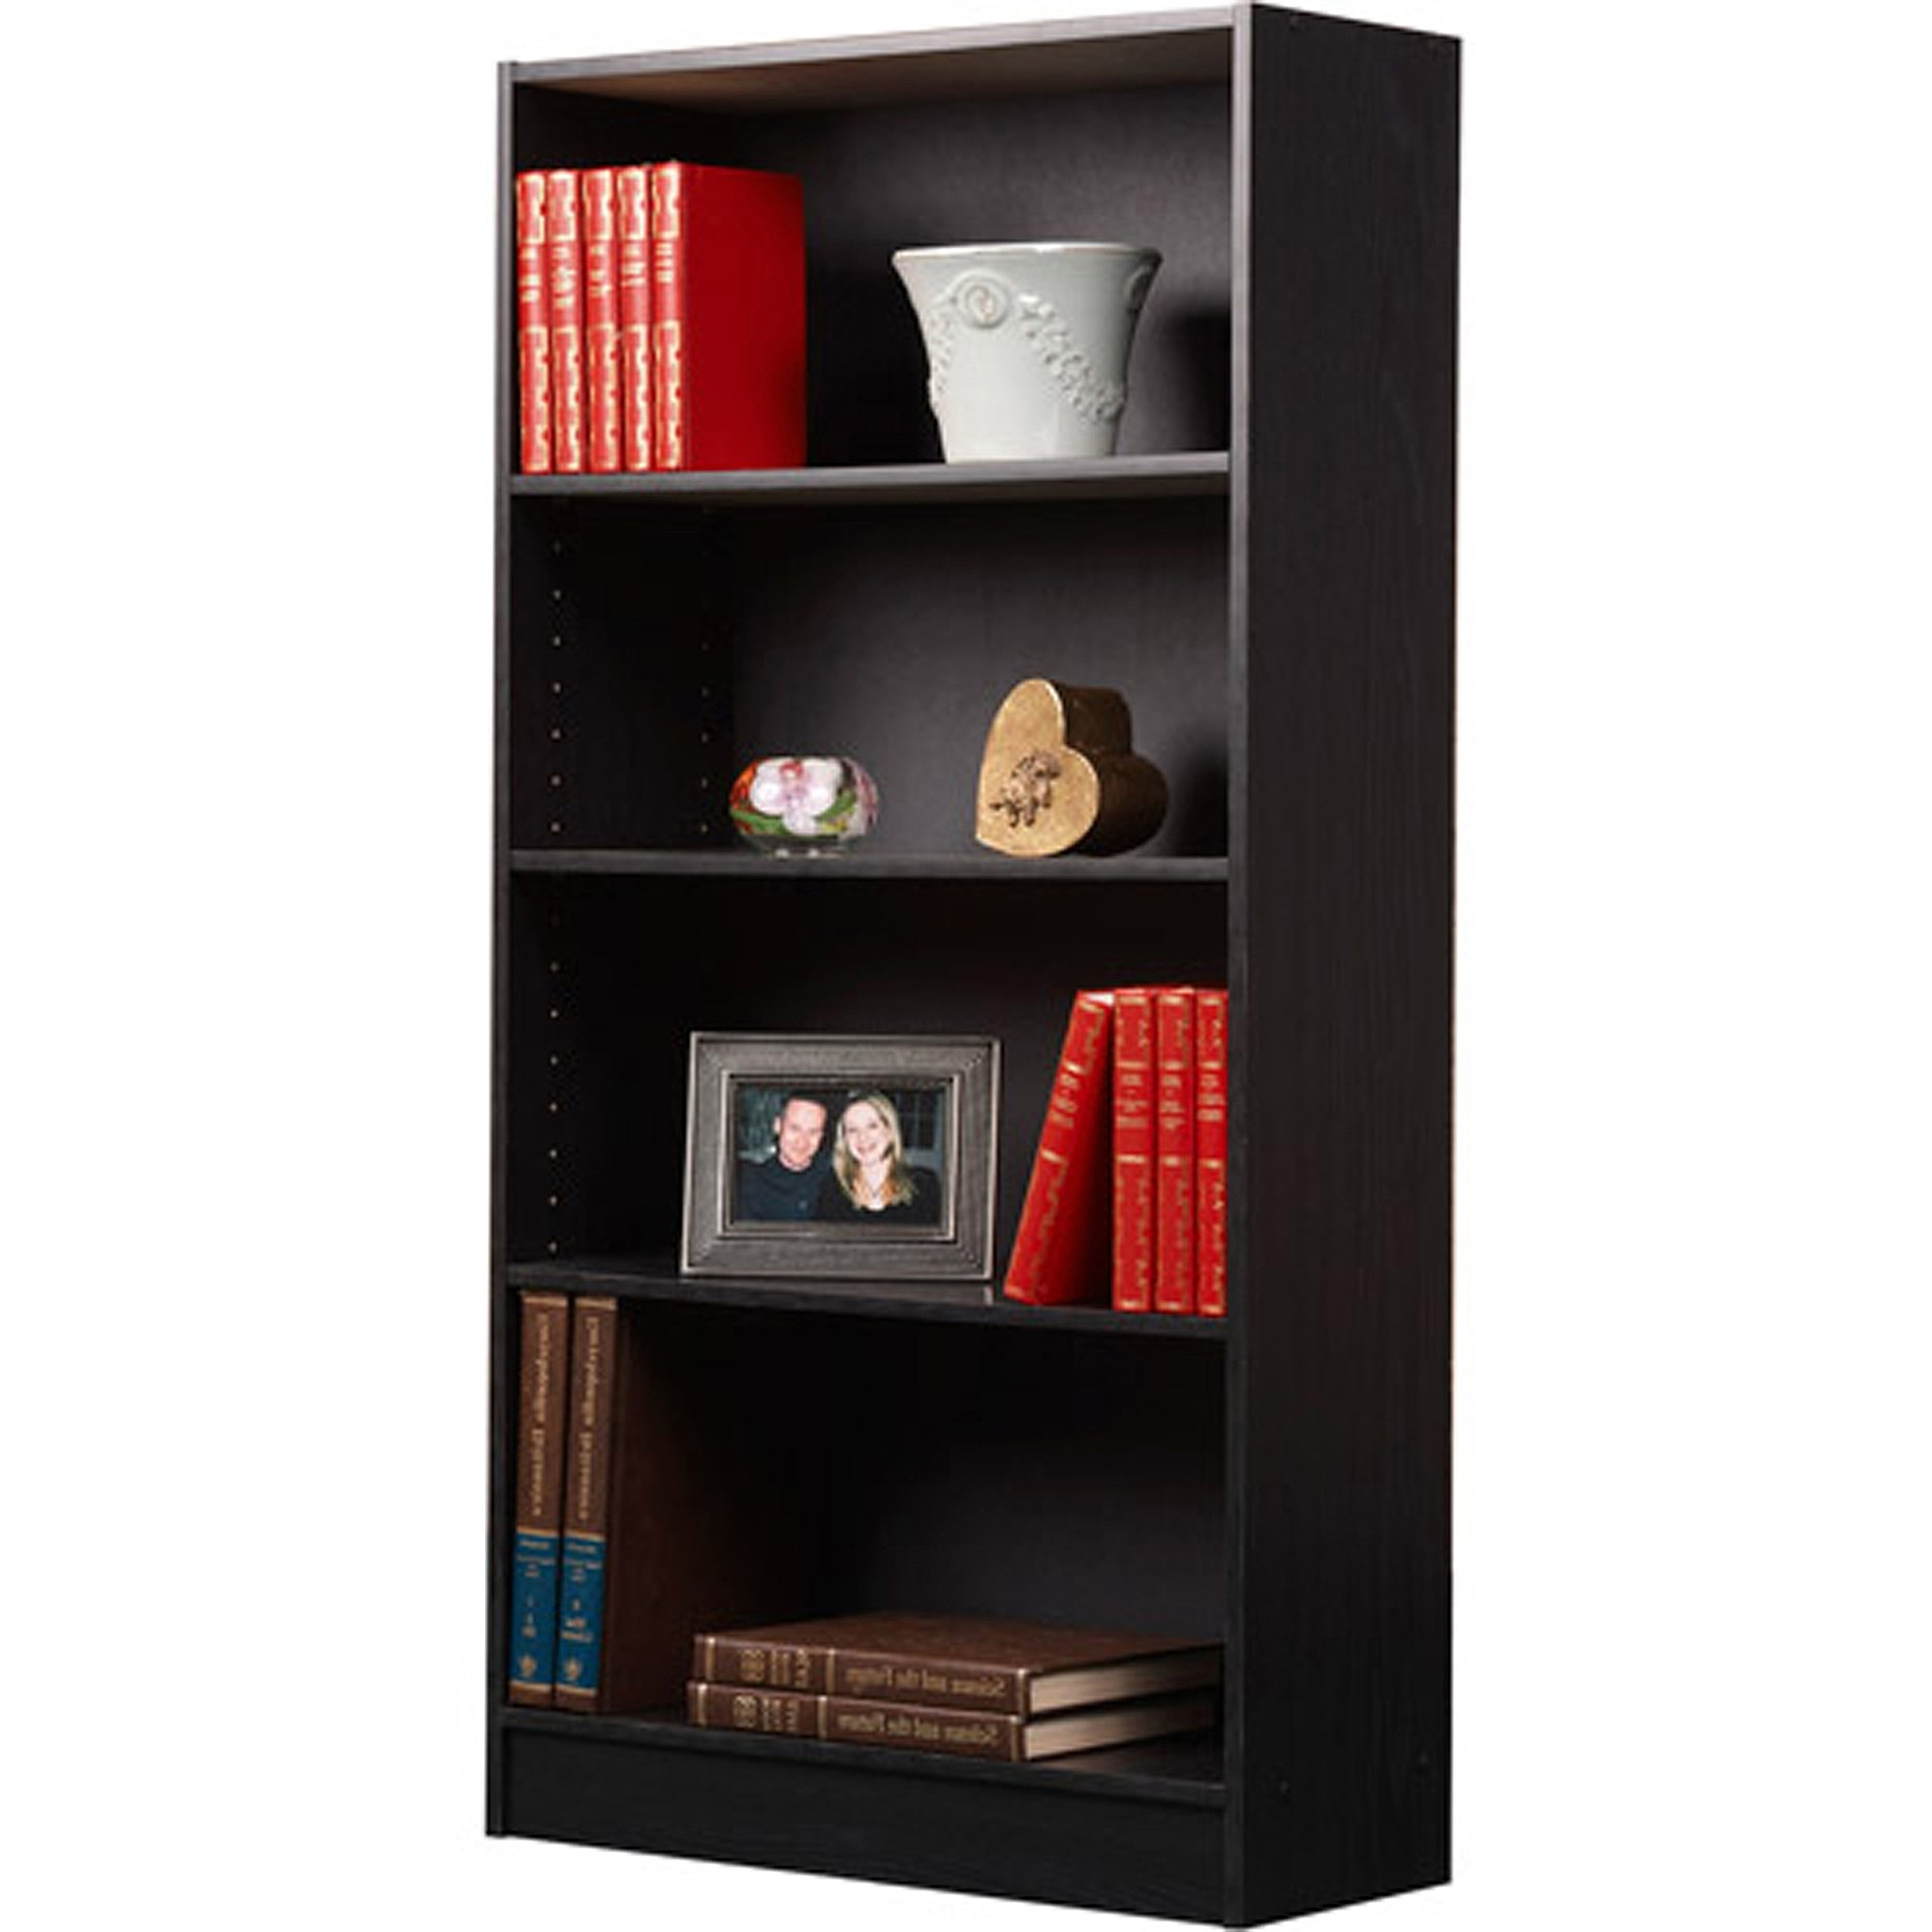 better collection bookcases crossmill finishes bookcase walmart and shelf gardens homes com multiple ip